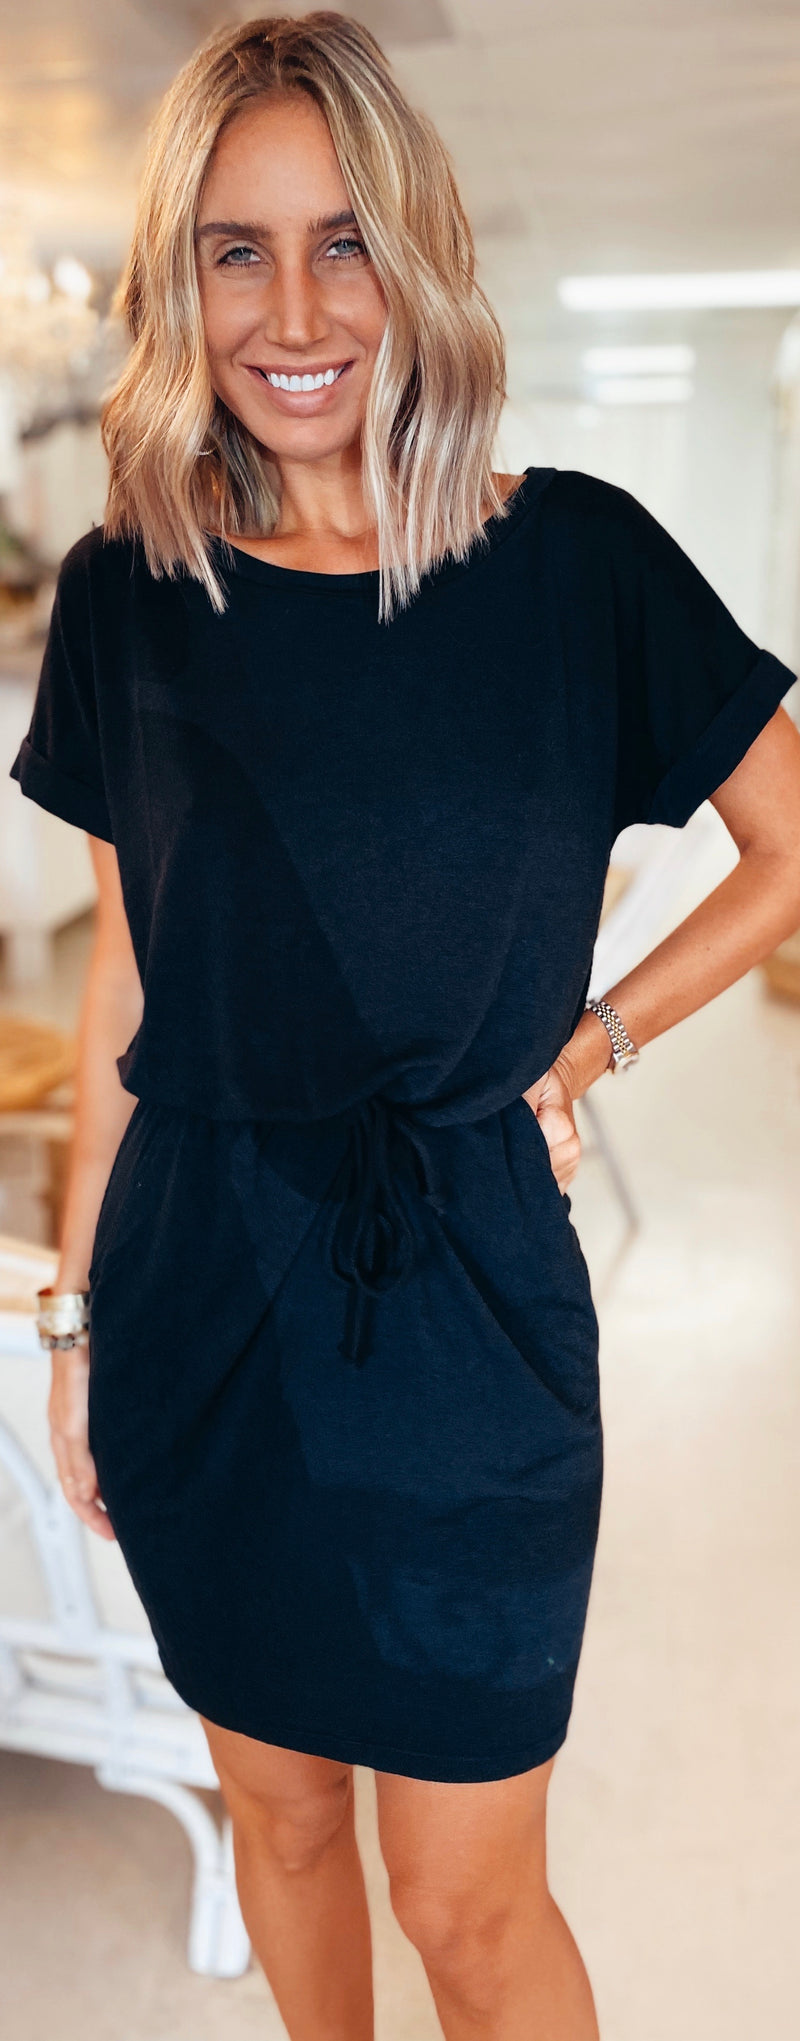 The Grounds Pocket Dress